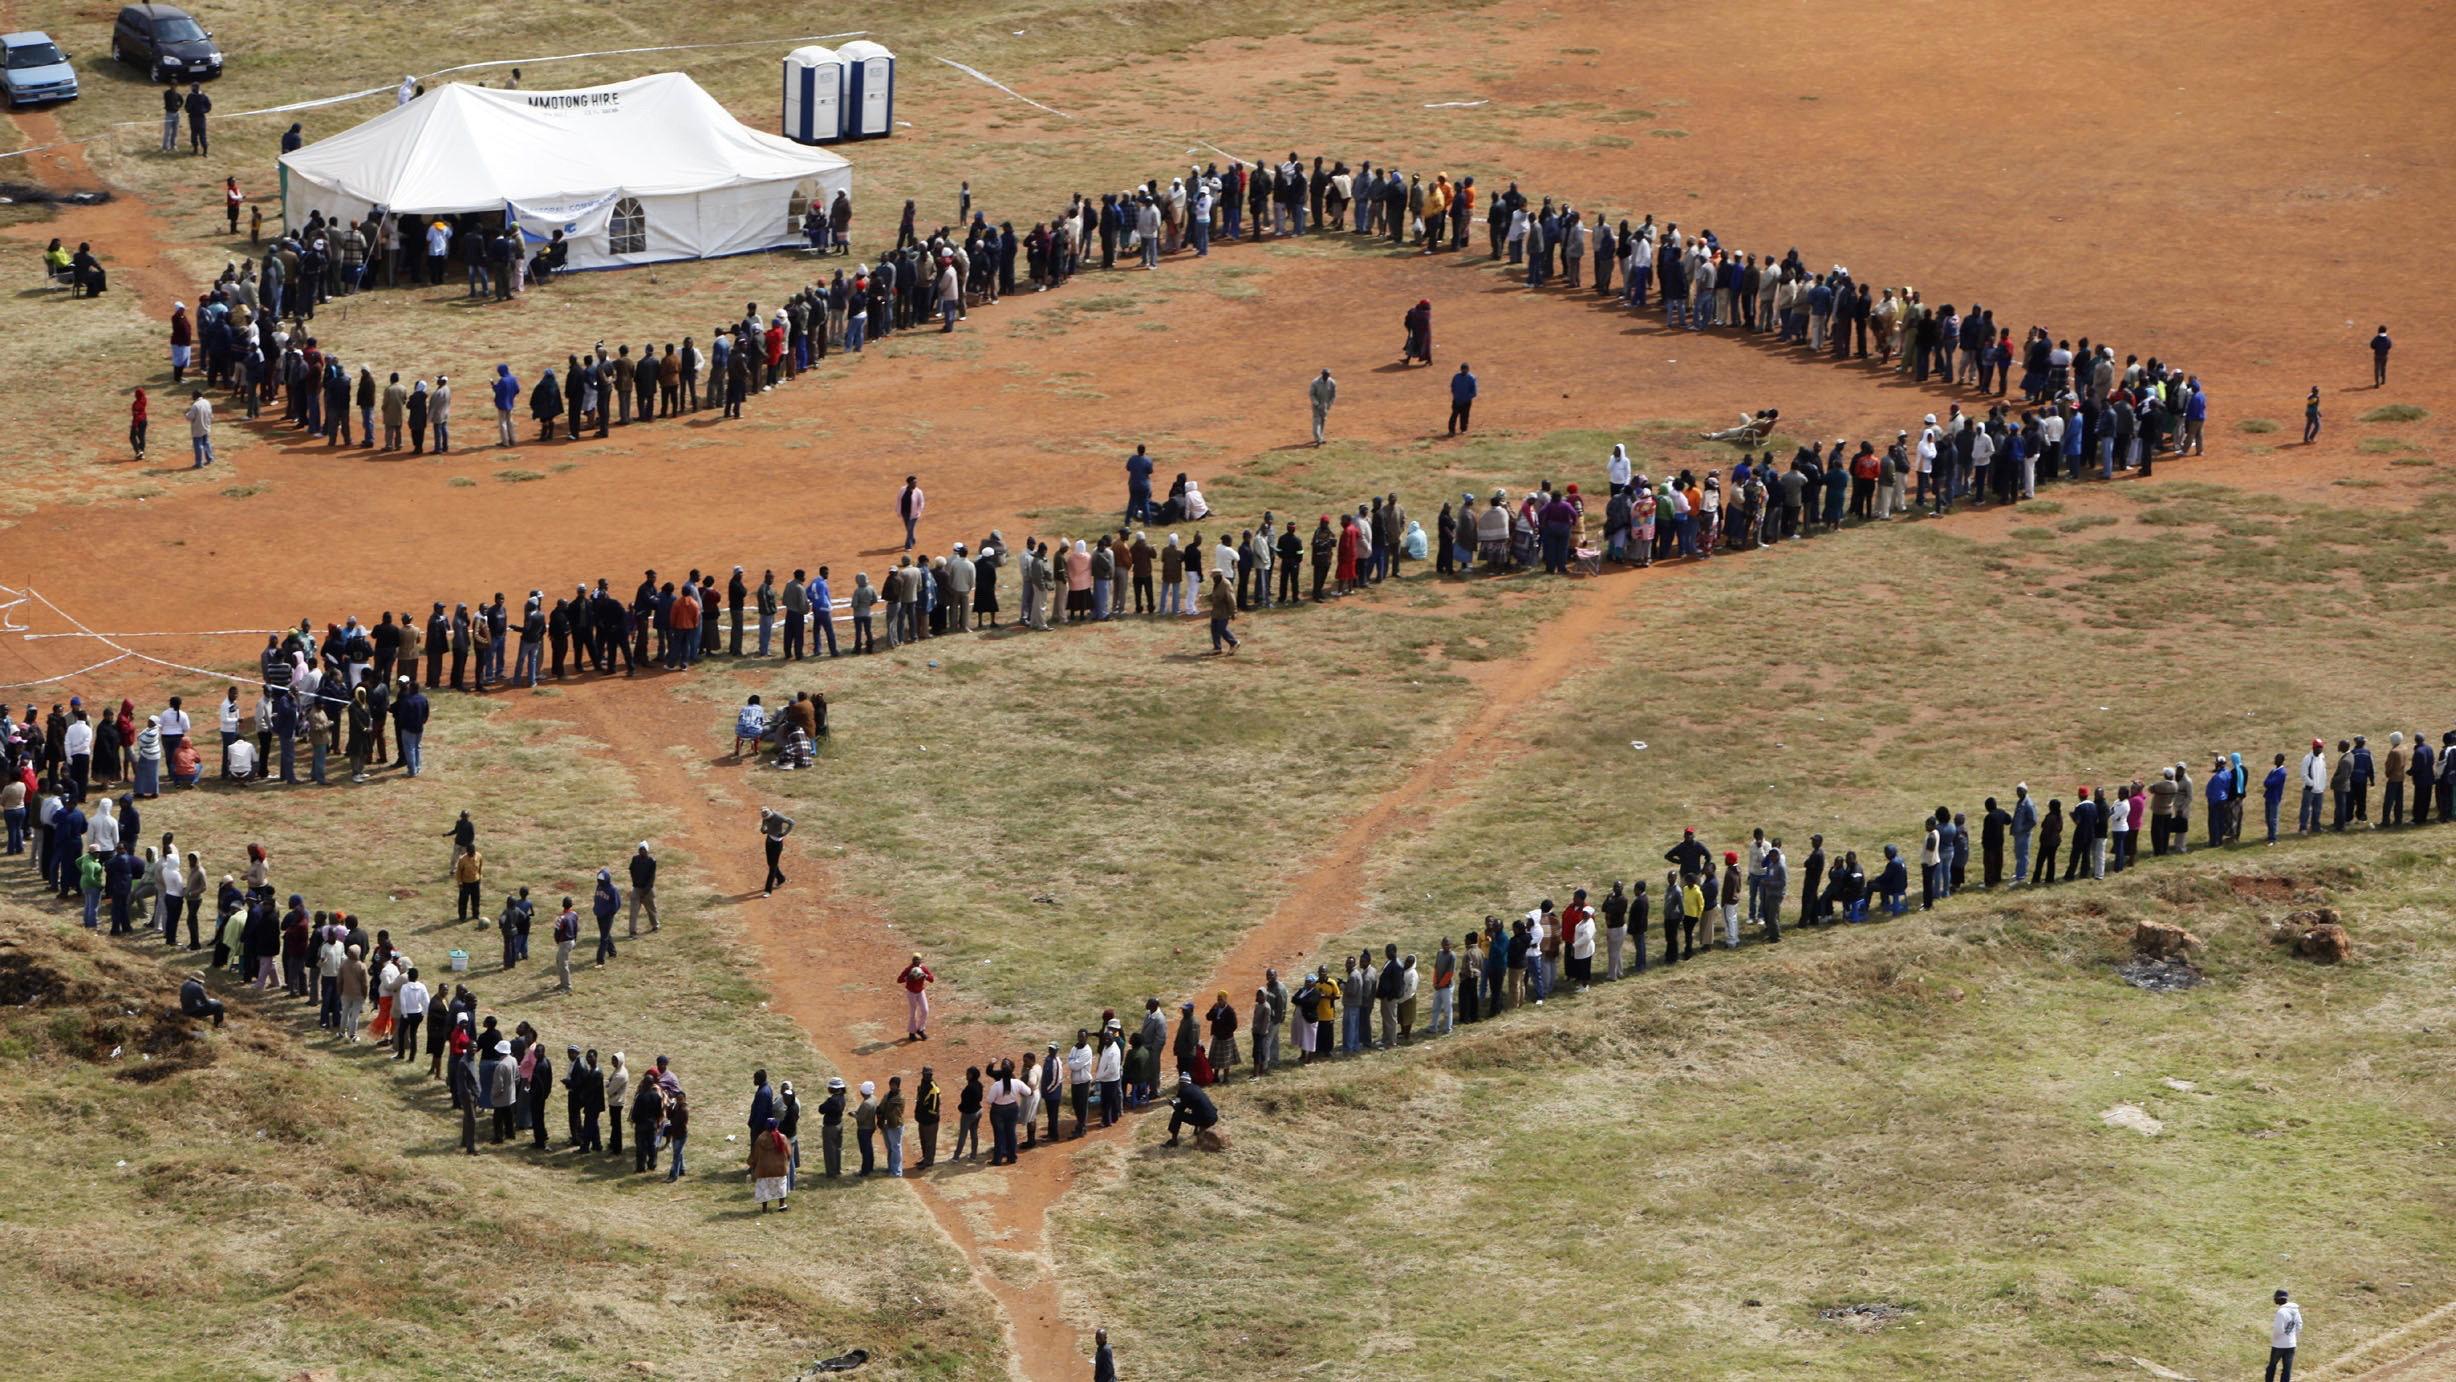 People queue to cast their votes at a polling station in the Katlehong township, east of Johannesburg, South Africa, Wednesday, April 22, 2009. Voters lined up before sunrise Wednesday in an election that has generated an excitement not seen since South Africa's first multiracial vote in 1994, and that was expected to propel Jacob Zuma to the presidency after he survived corruption and sex scandals. (AP Photo/Denis Farrell)